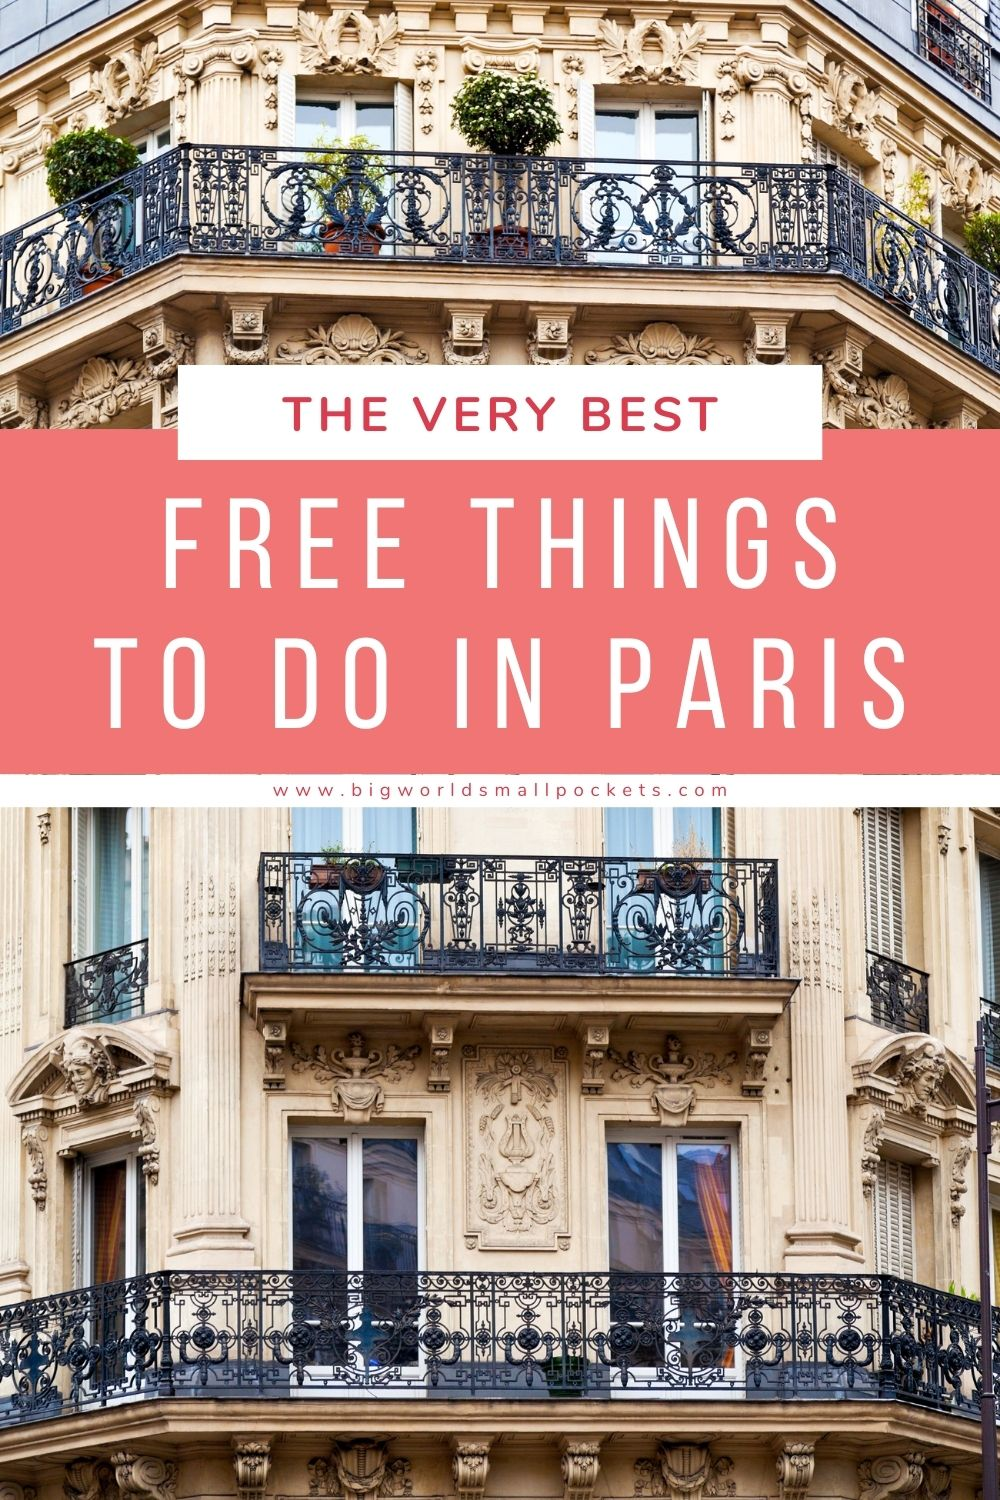 The Best Free Things To Do in Paris, France